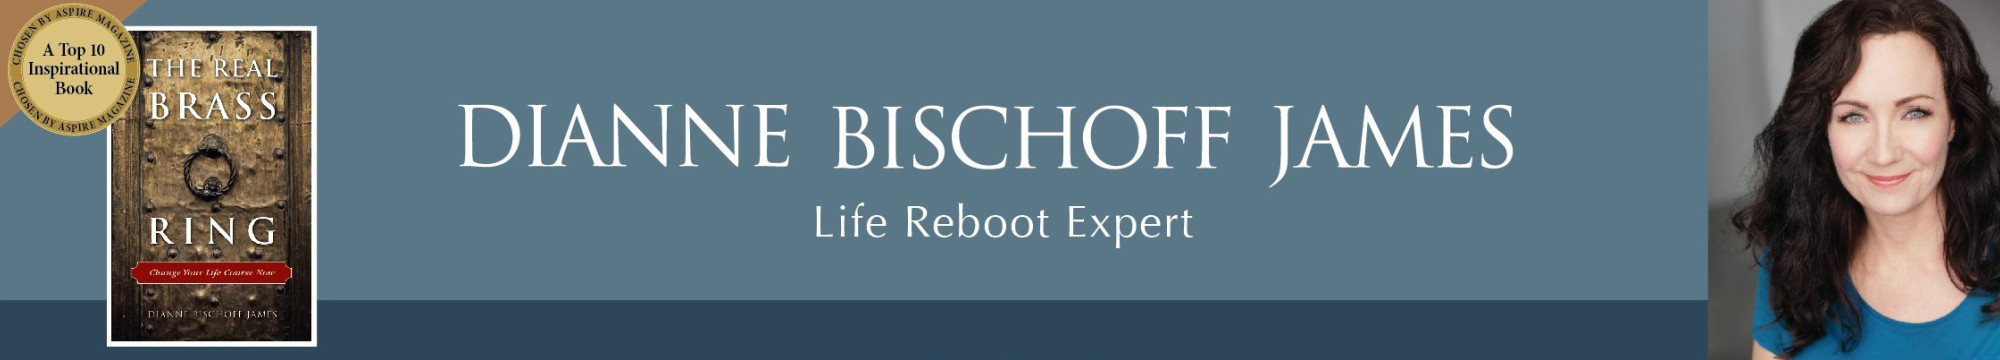 Dianne Bischoff James - Life Transformation Coach, Speaker and Author